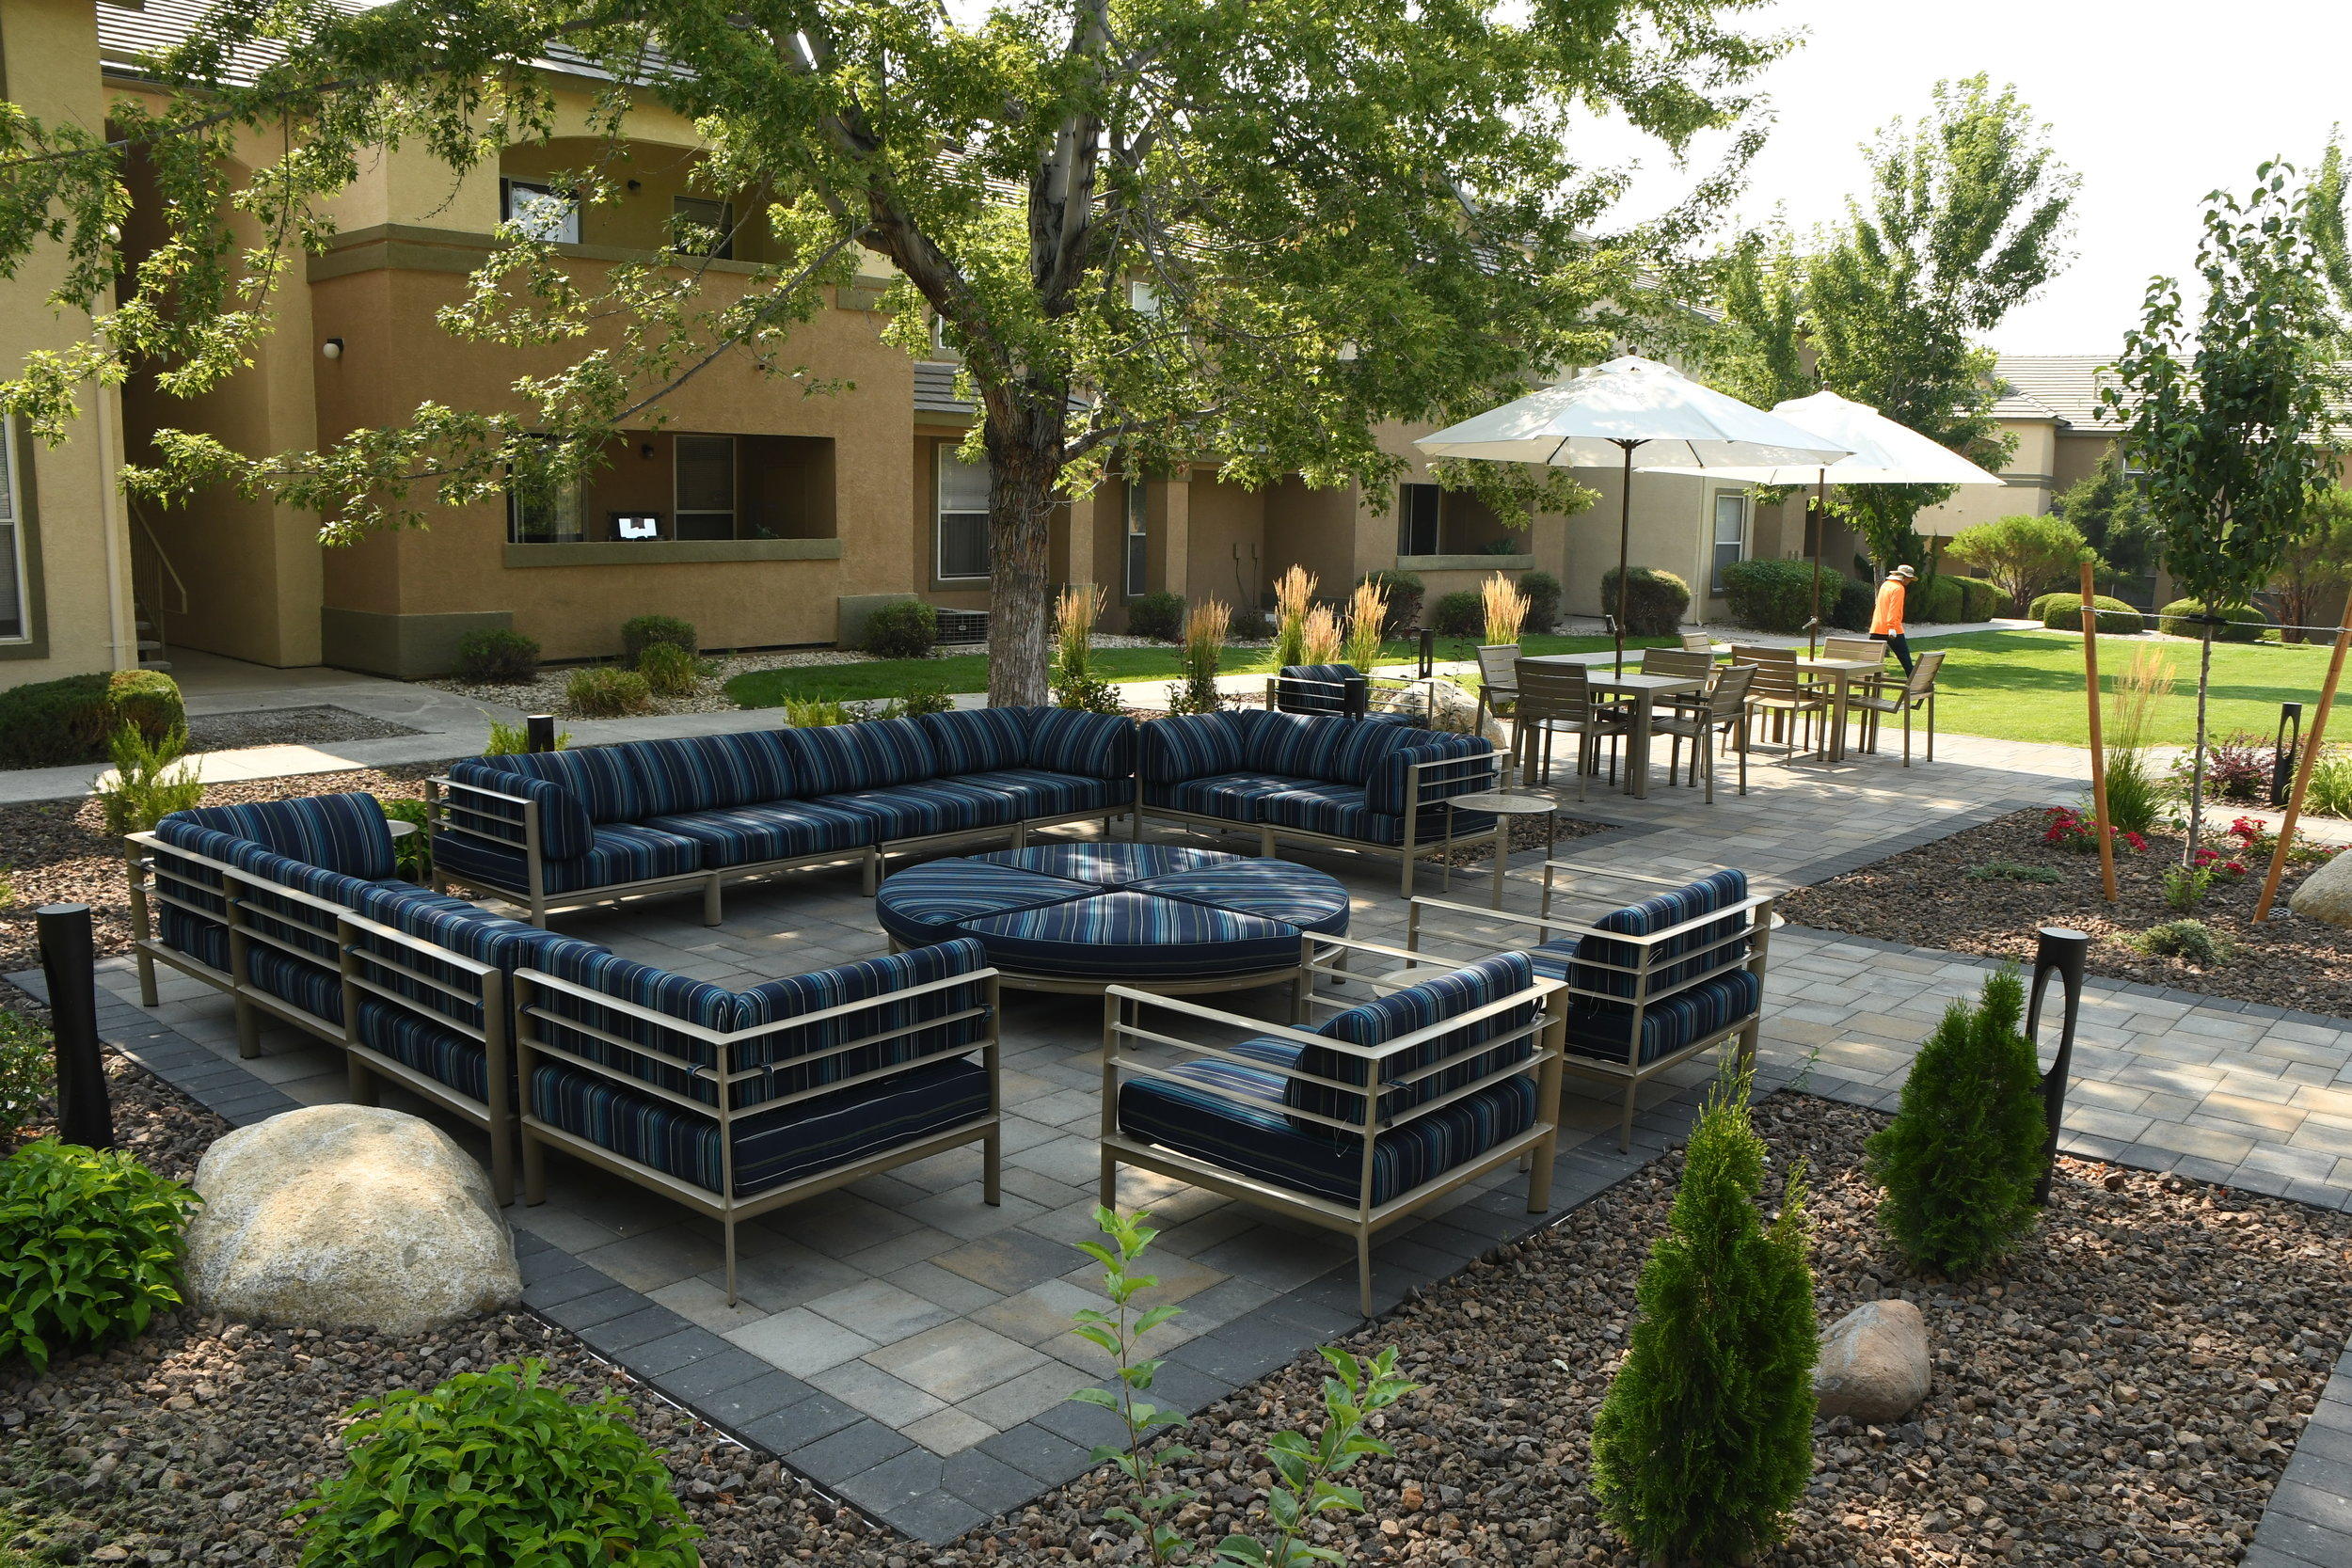 FireSky Outdoor: Designed by Landscape Architects, Built ... on Backyard Landscaping Companies Near Me id=77979